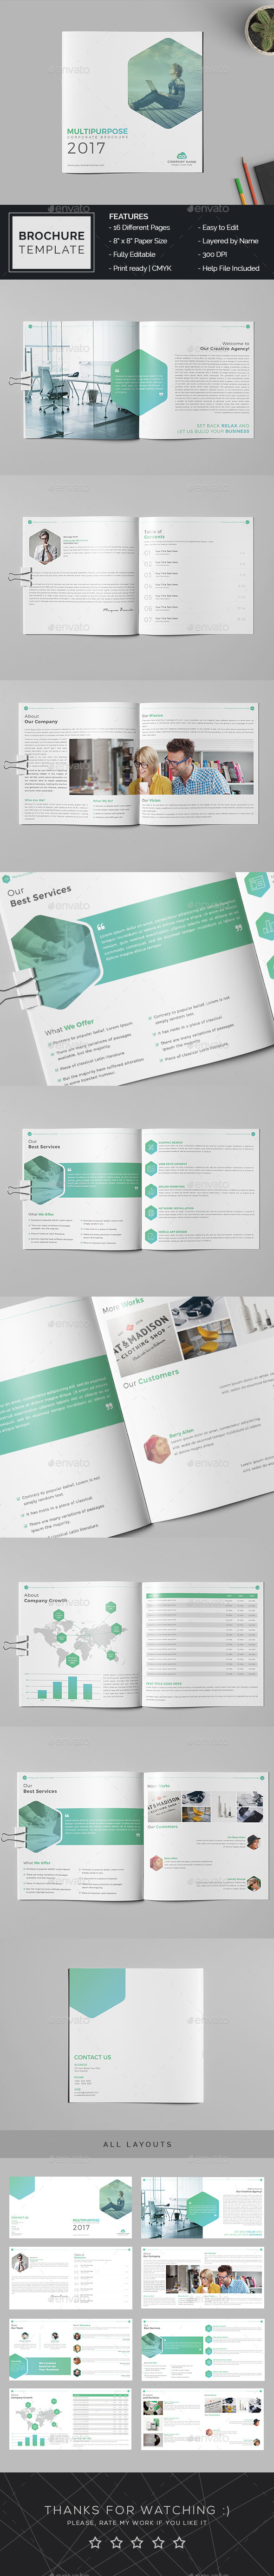 Company Profile Brochure Template By Mrremon GraphicRiver - Company profile brochure template